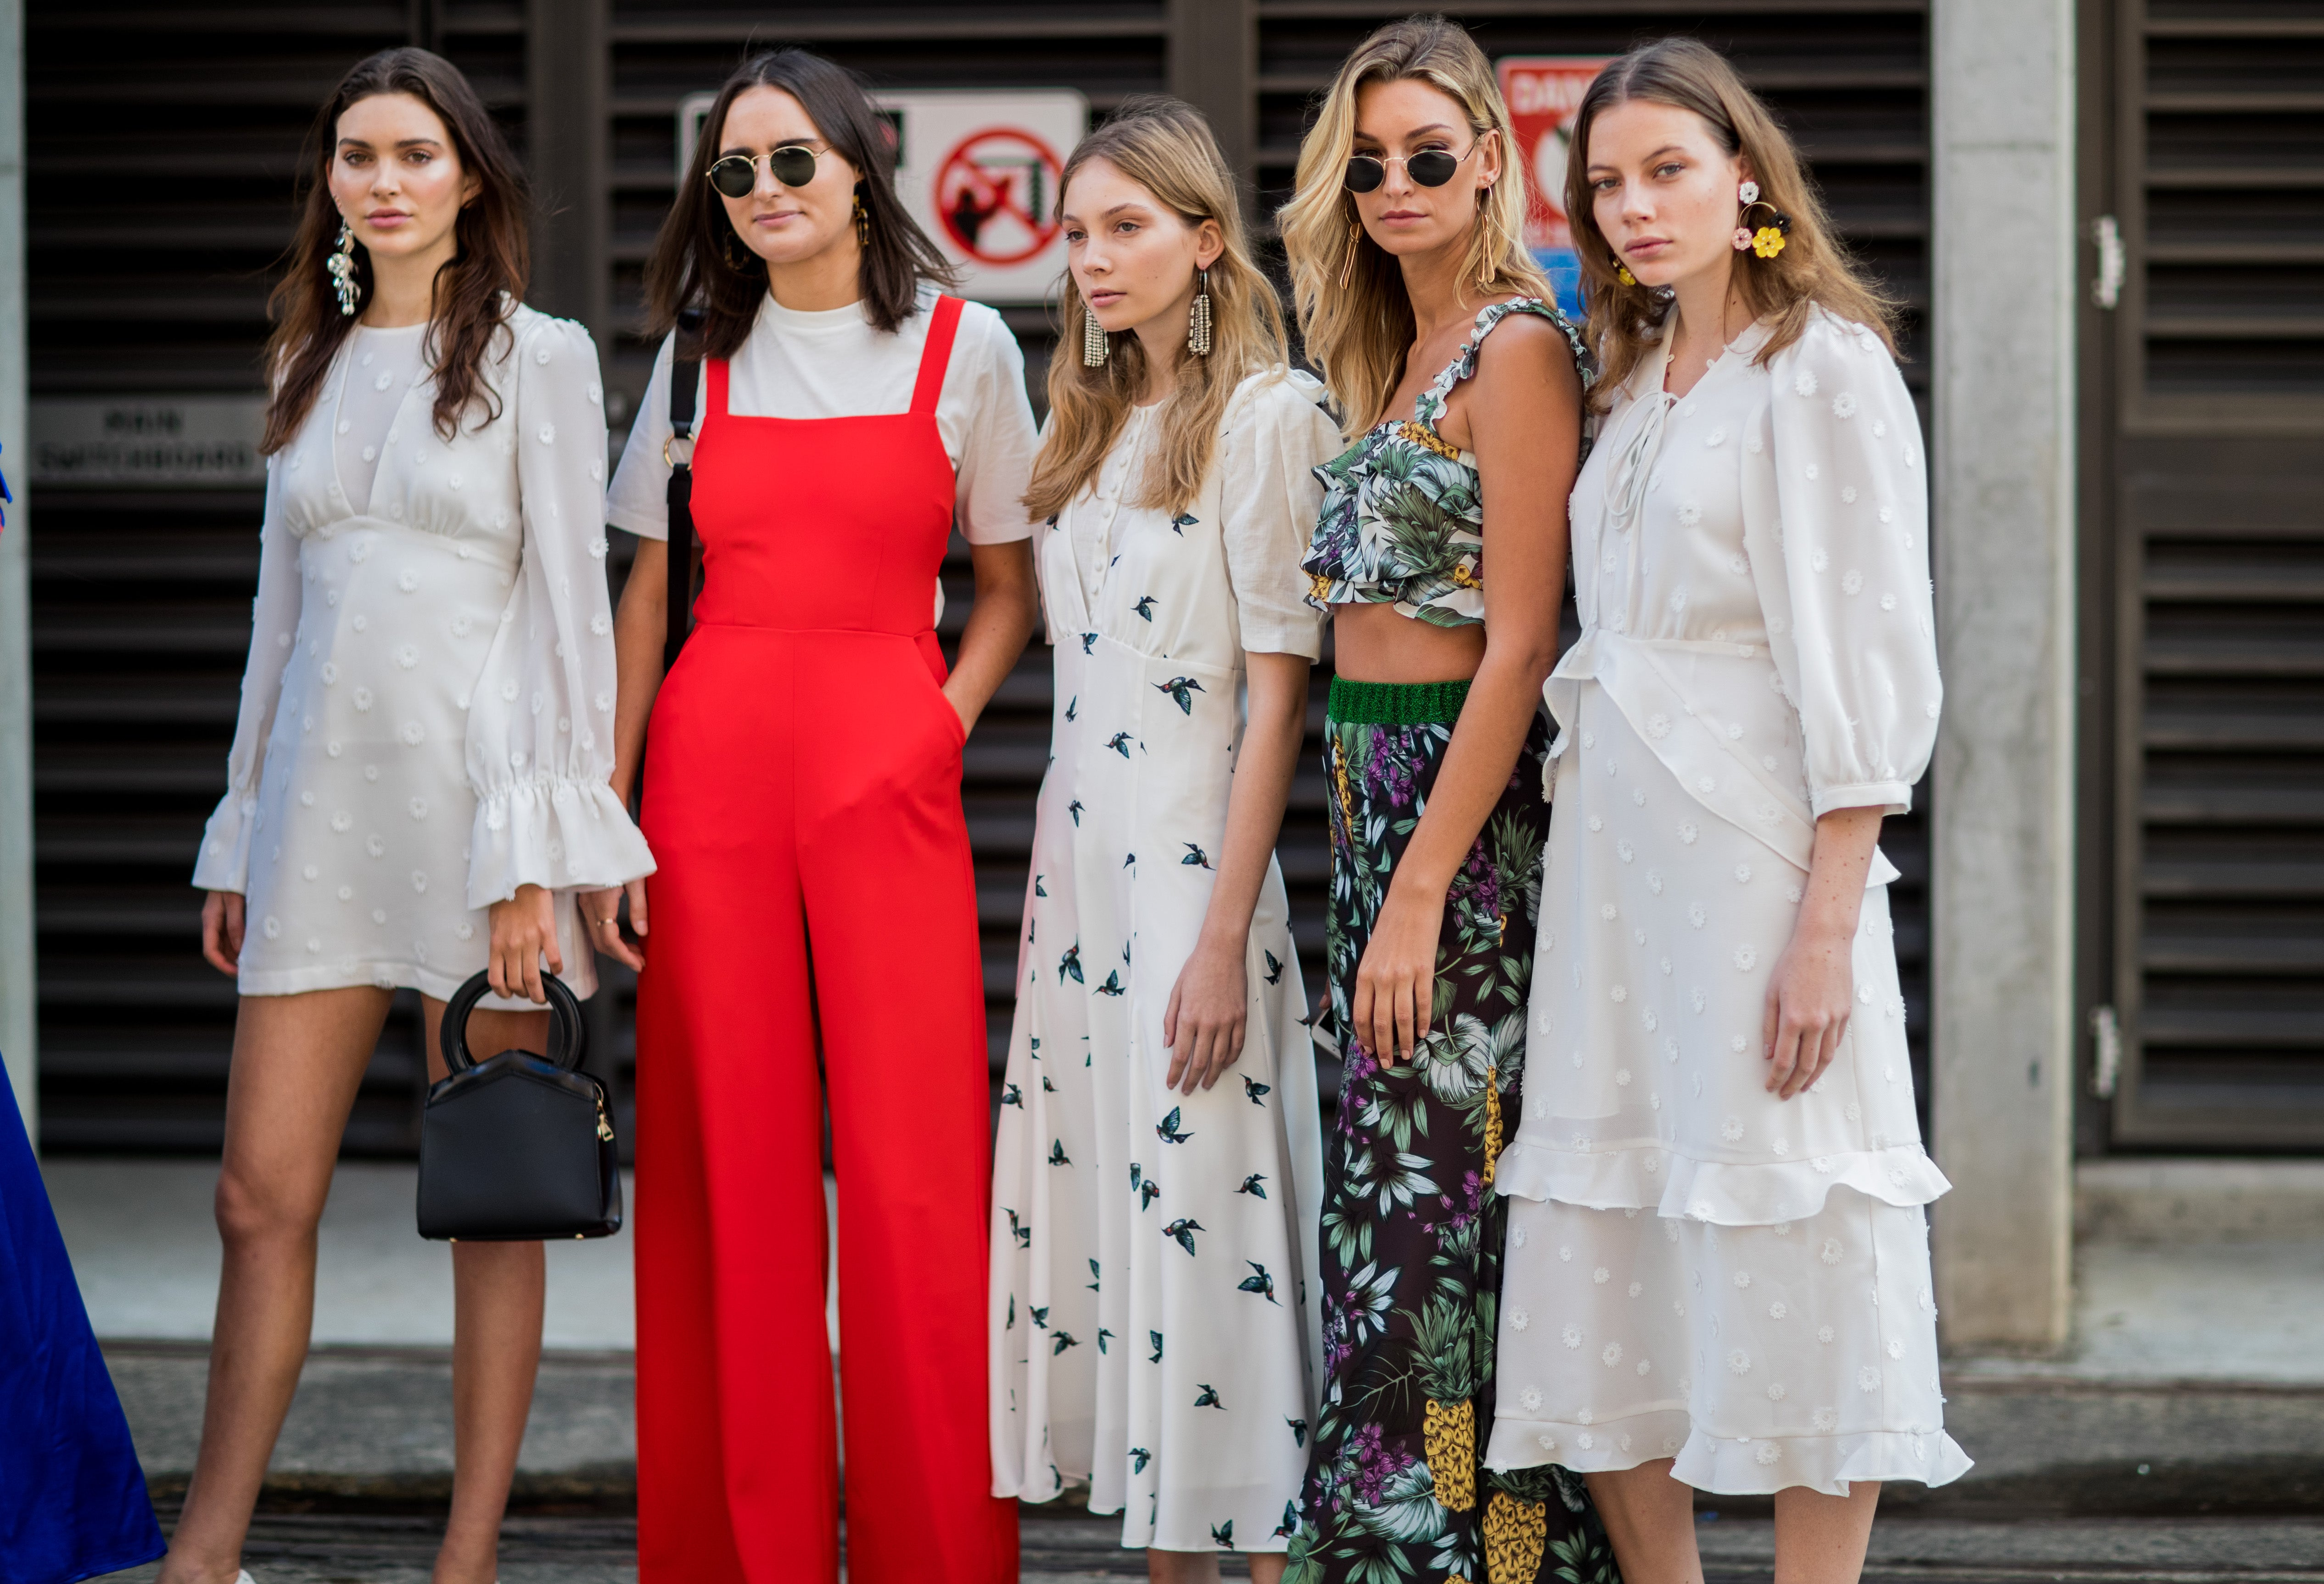 097d81582 Amazon Prime Day 2019: Shop Remaining Fashion Deals From Apple, Alo ...